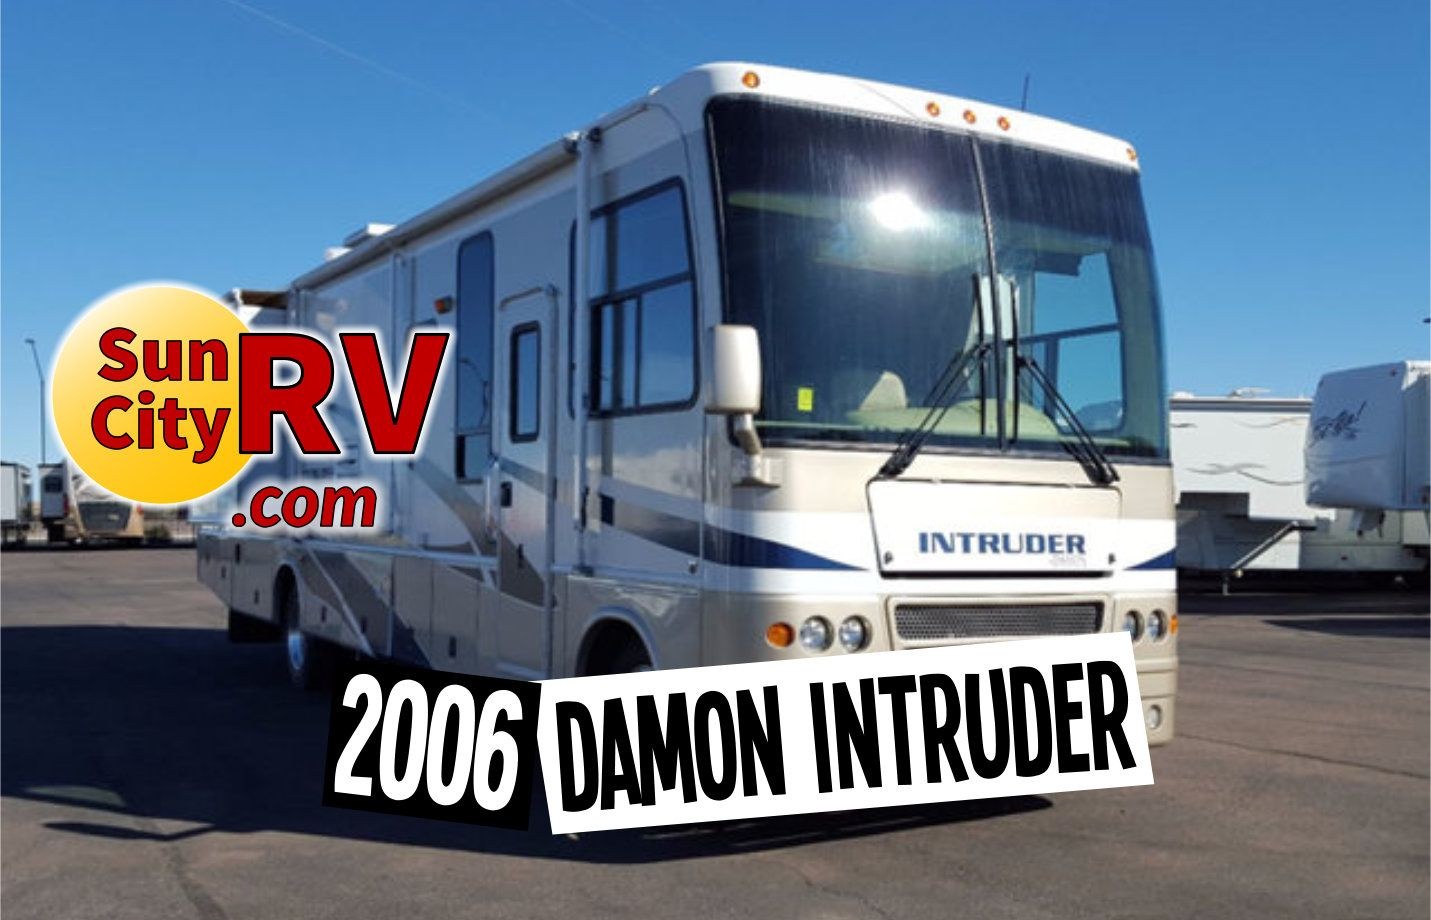 Just in this 2006 damon intruder 373 rv is now available